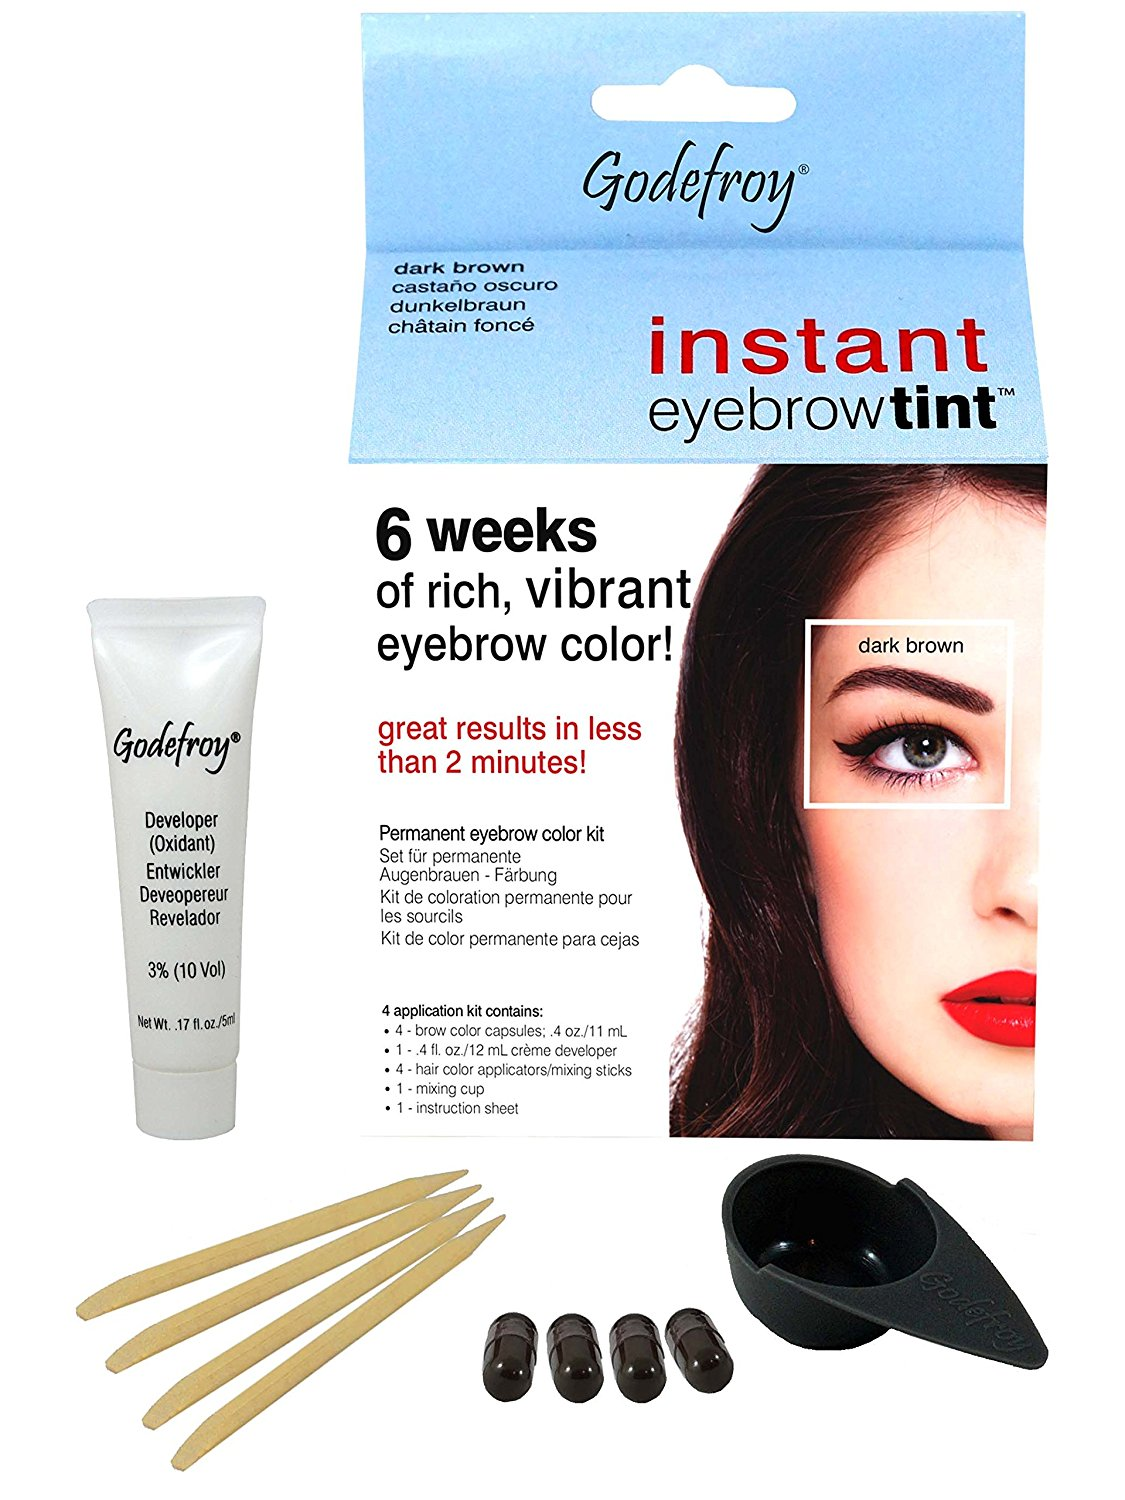 Best Eyebrow Tinting Kit Reviews 2018 (Experts\' Choice) -16best.net